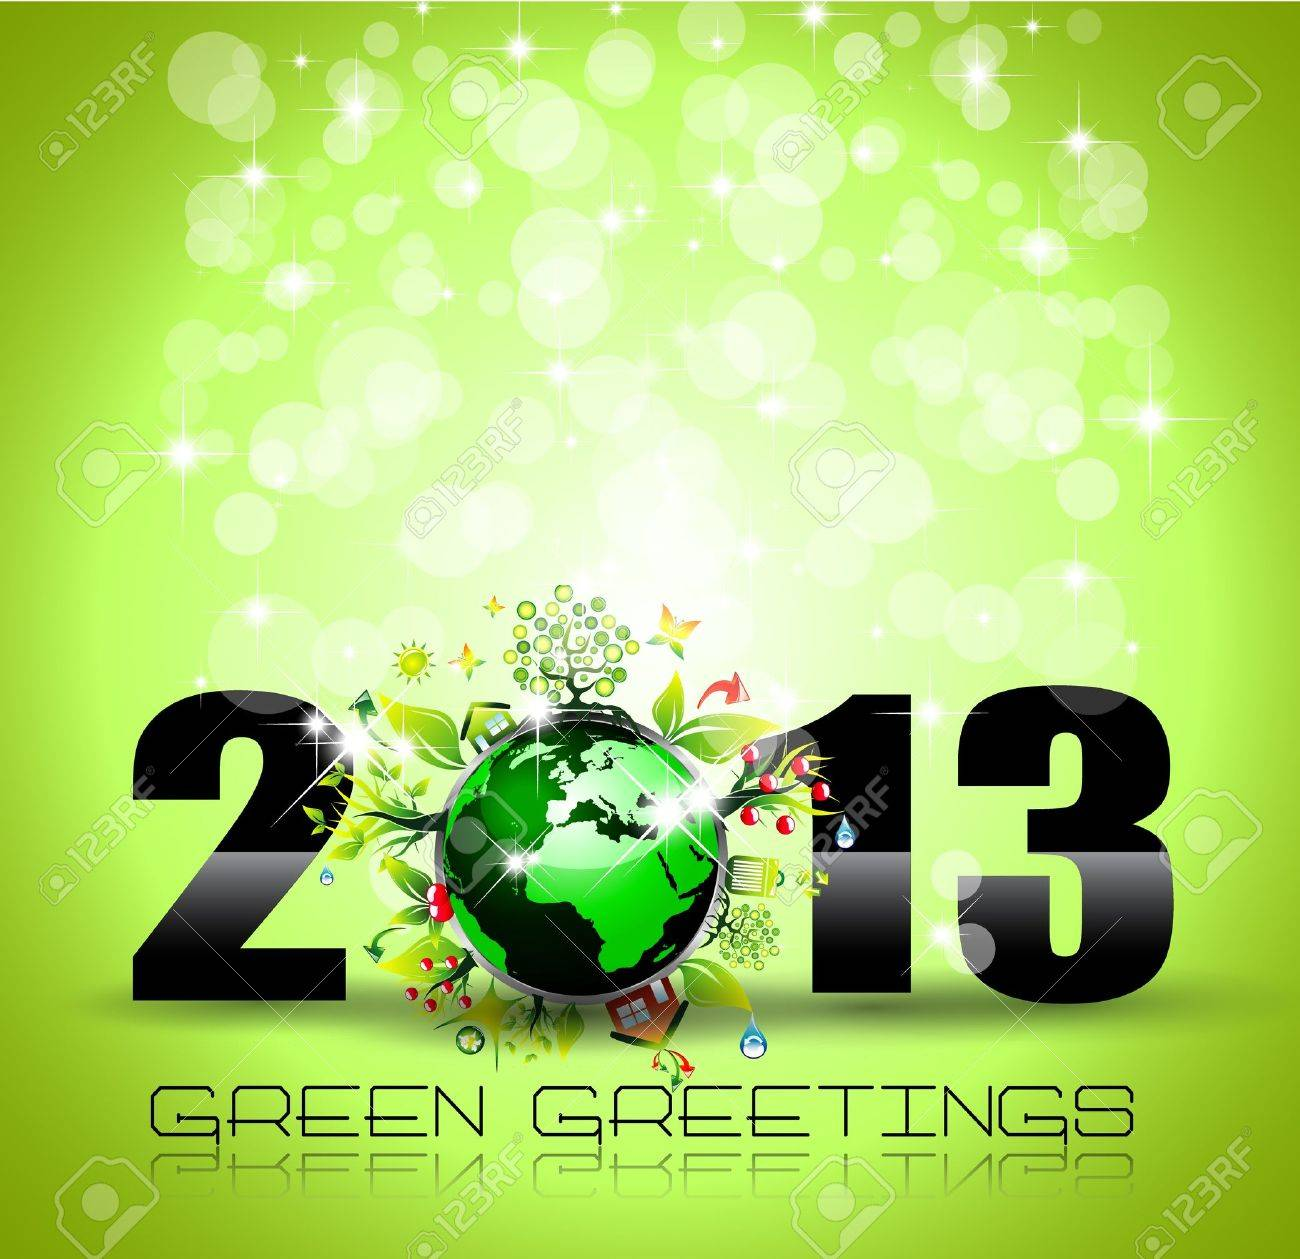 2013 Ecology Green Themed Greetings for New Year Posters with a glitter background Stock Vector - 16642603